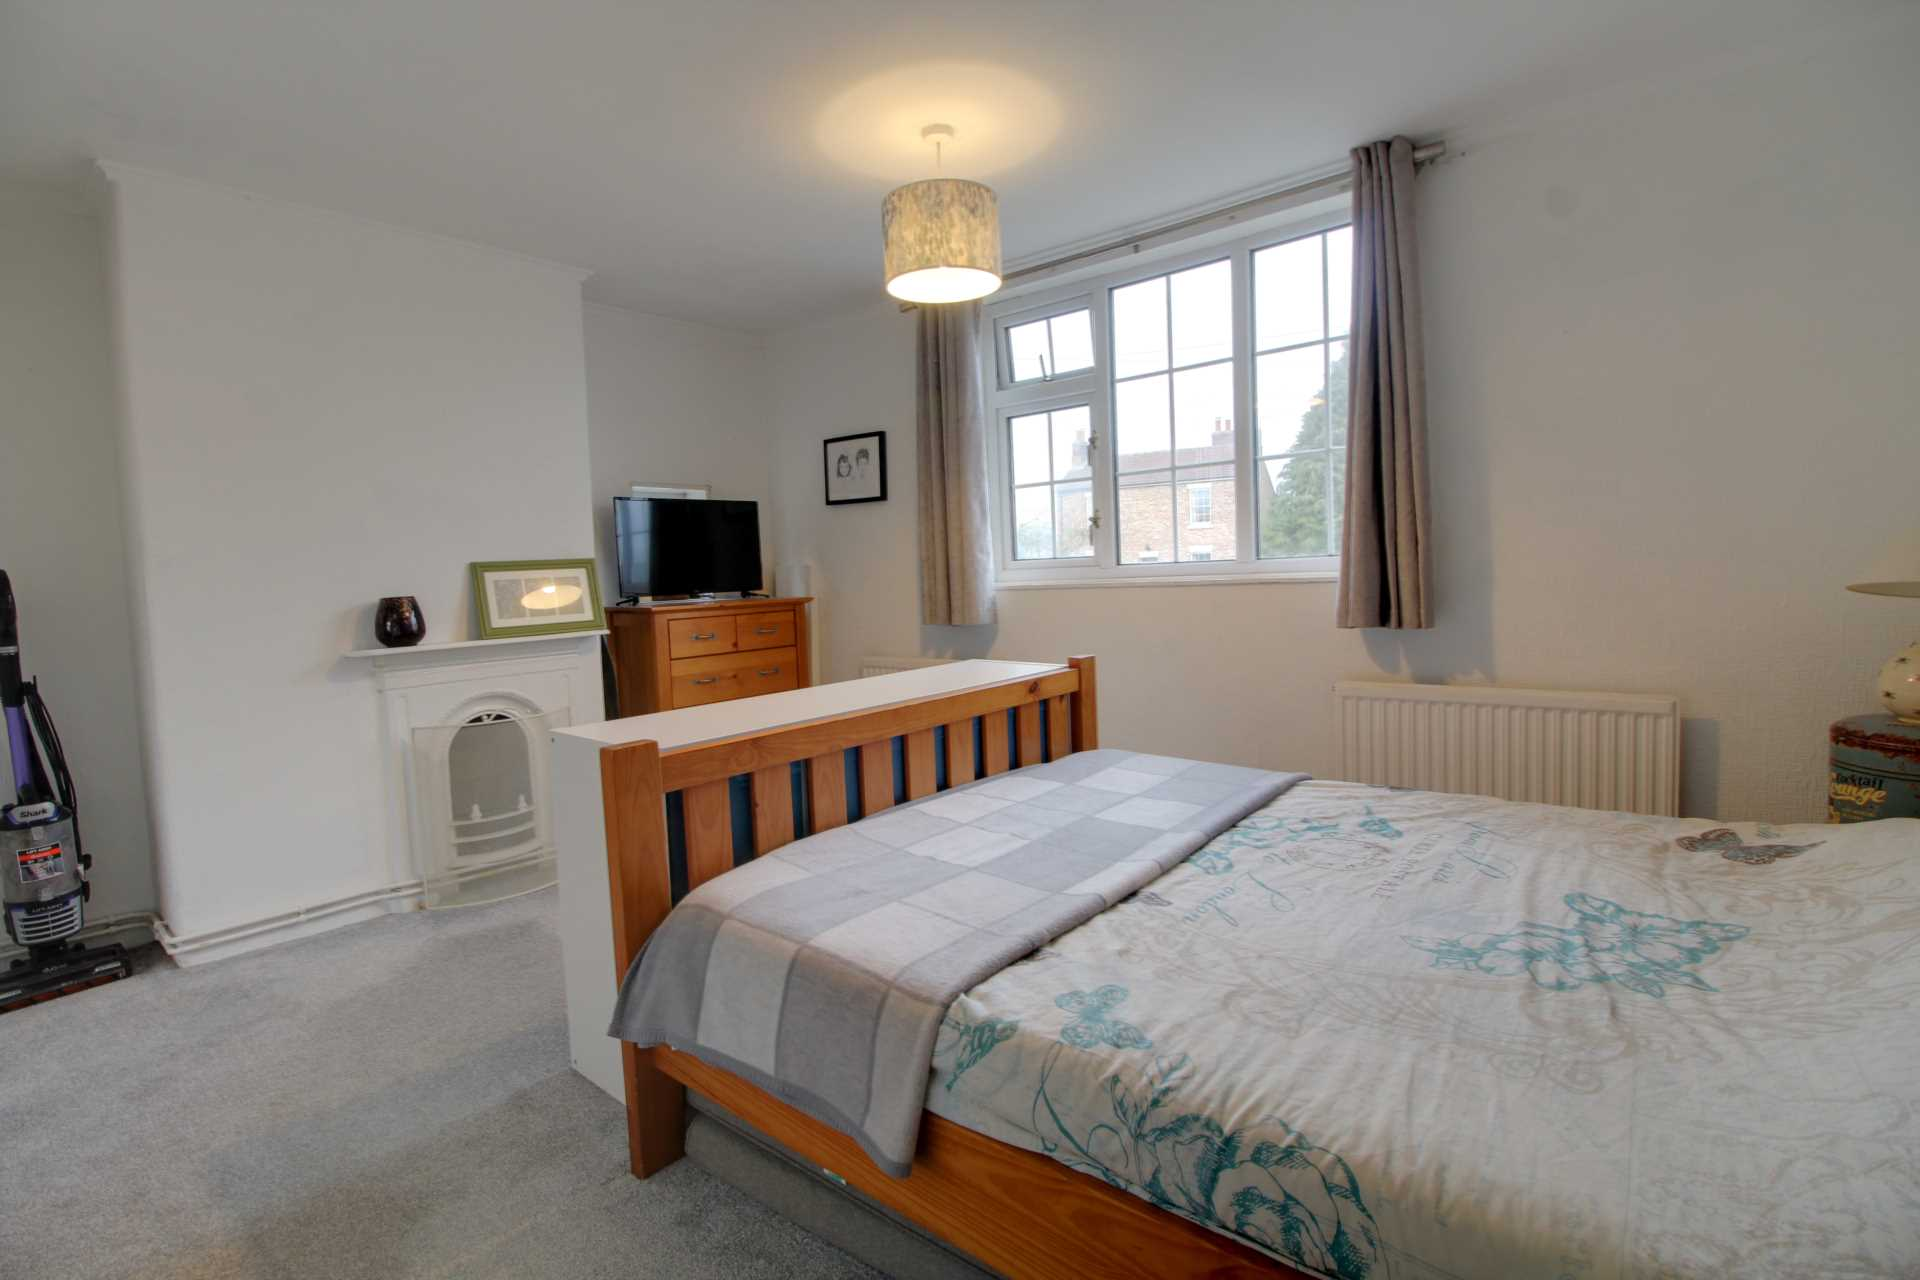 Pleasant Villa, Heapham, Gainsborough - with approx 6 acres sts., Image 17